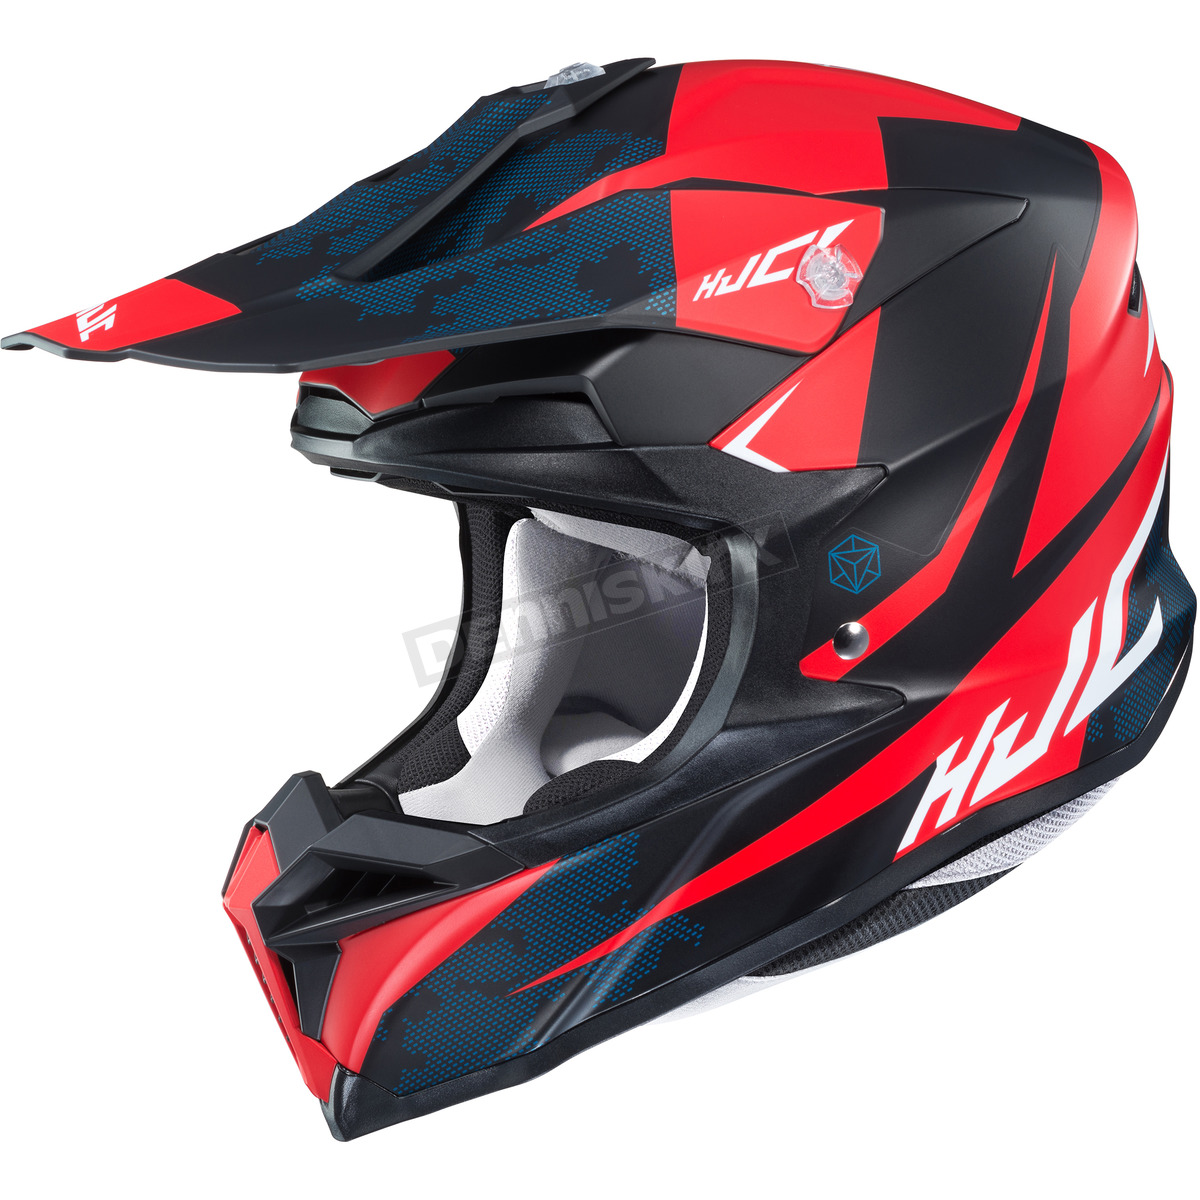 041e1e7fb643c6 HJC Semi-Flat Red/Black/Blue/White i50 Tona MC-5SF Helmet - 1306-711 ...